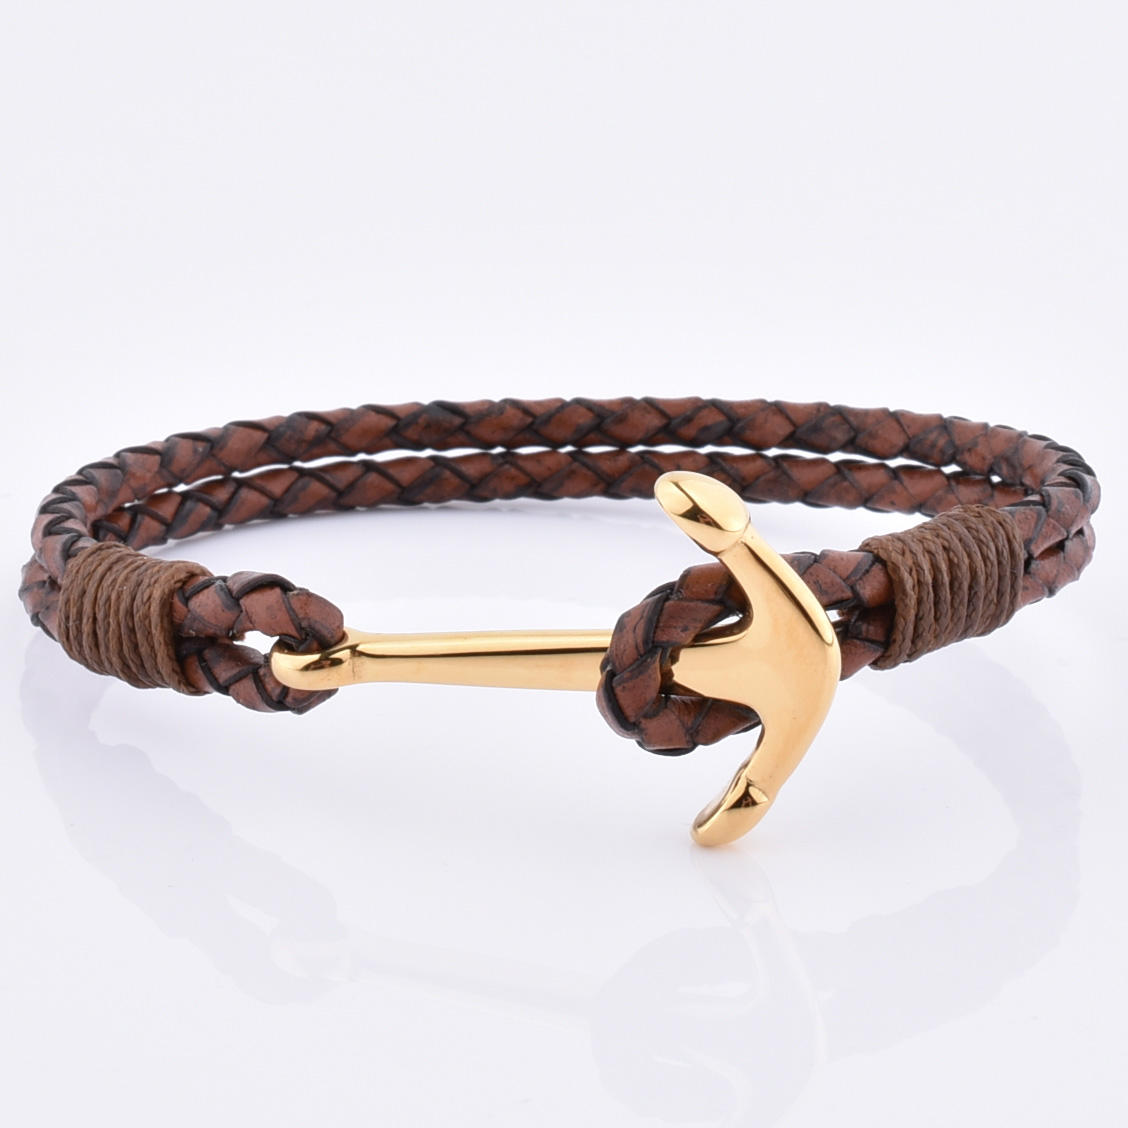 Fashion Jewelry 2019 Anchor Charm Leather Cord Custom Bracelet